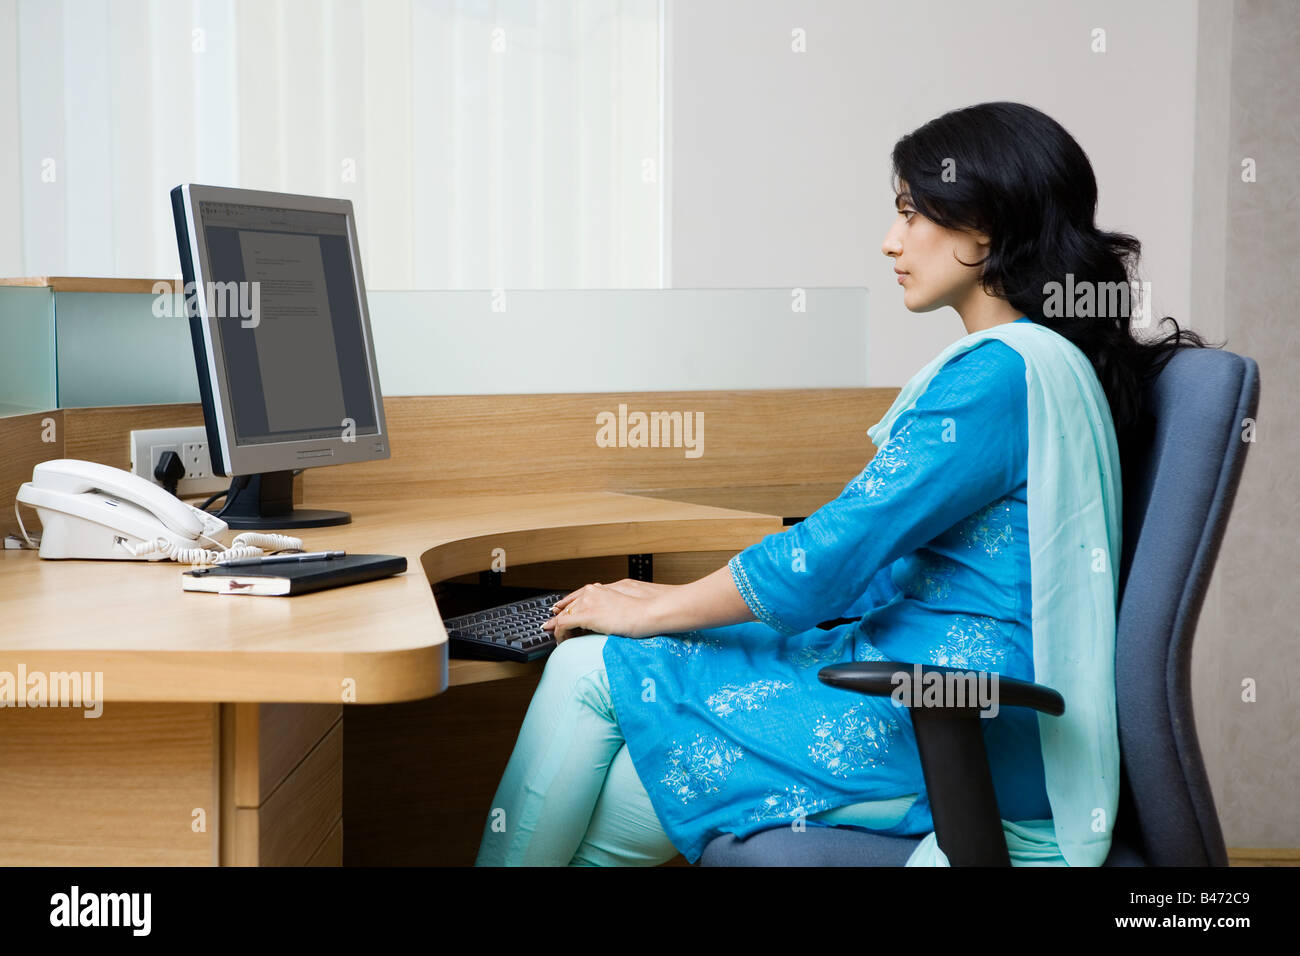 Indian woman working at her desk - Stock Image